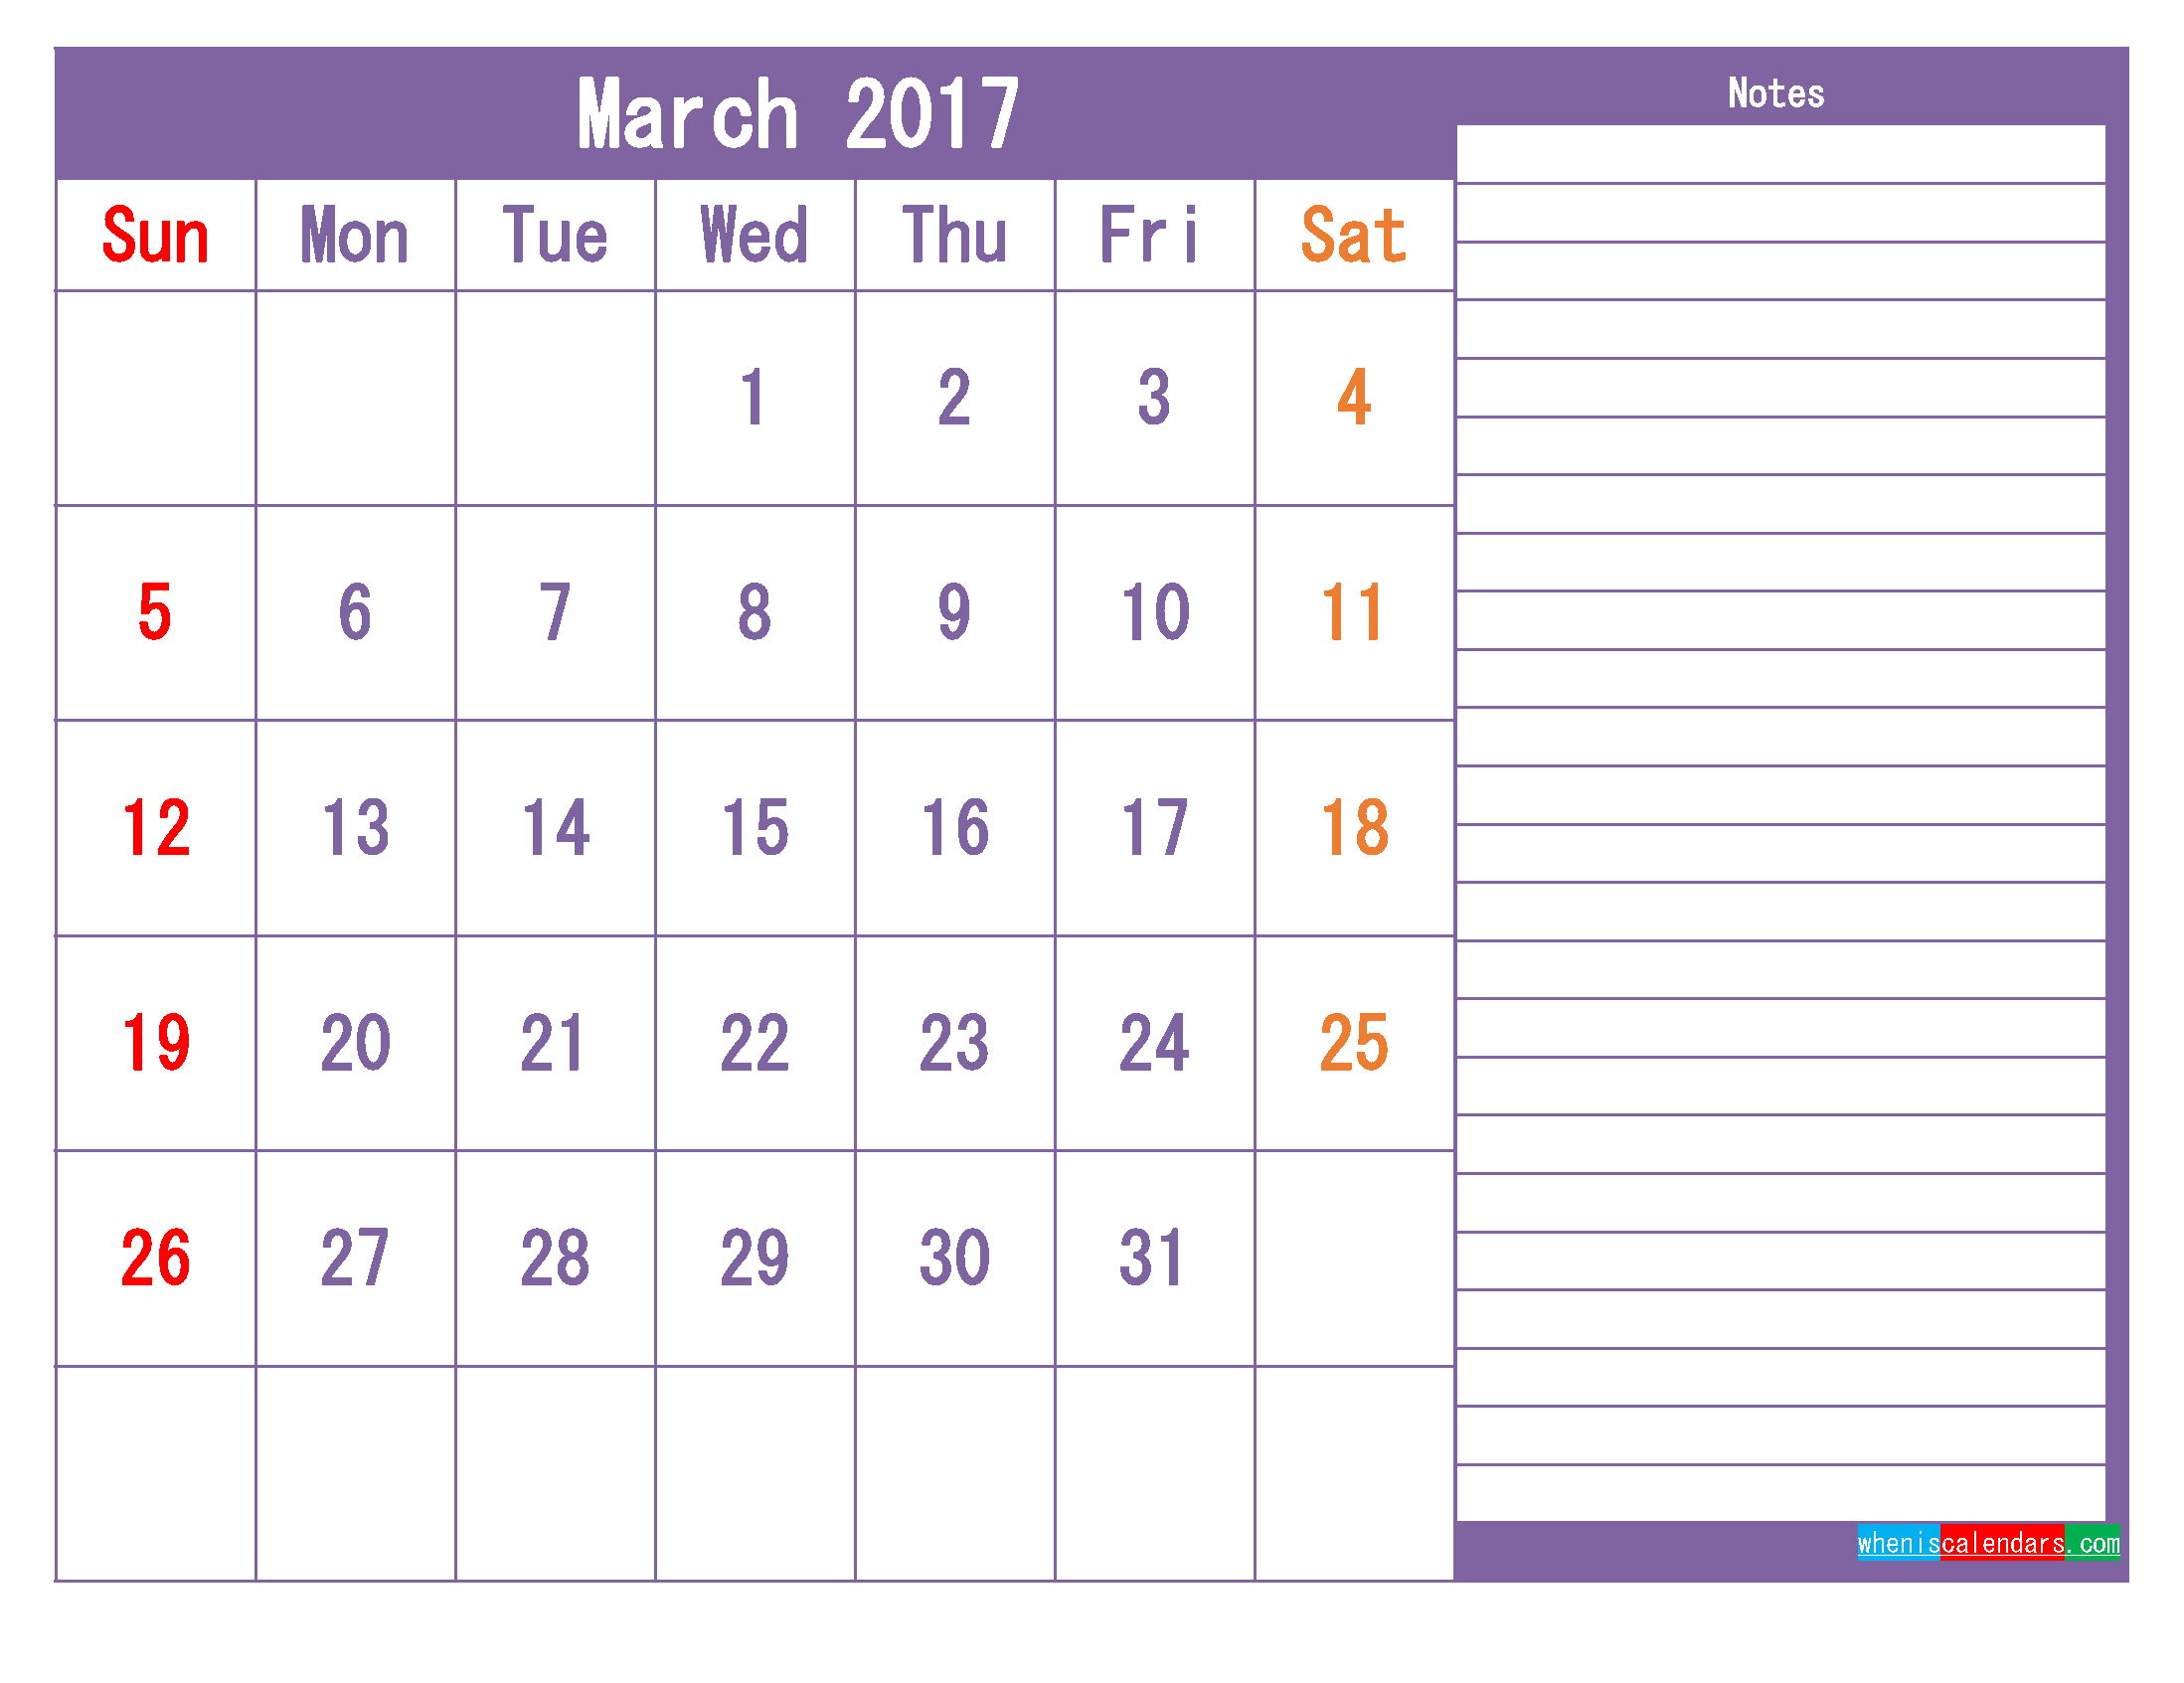 March 2017 Printable Calendar Template as PDF and PNG